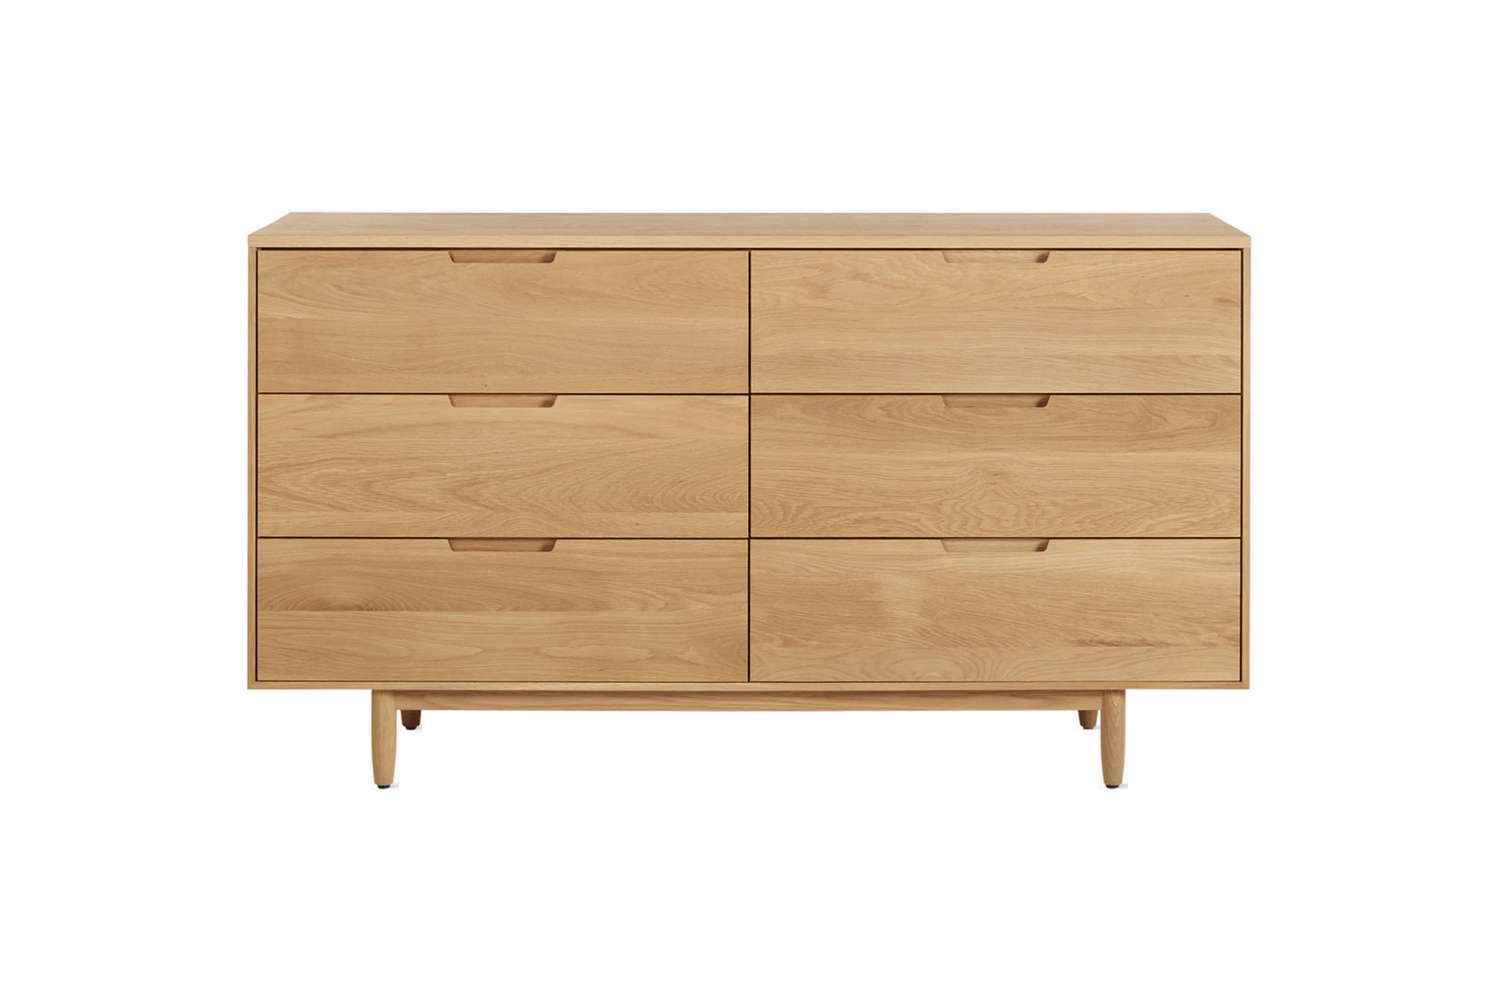 10 Easy Pieces: Simple Wood Dressers - Remodelista